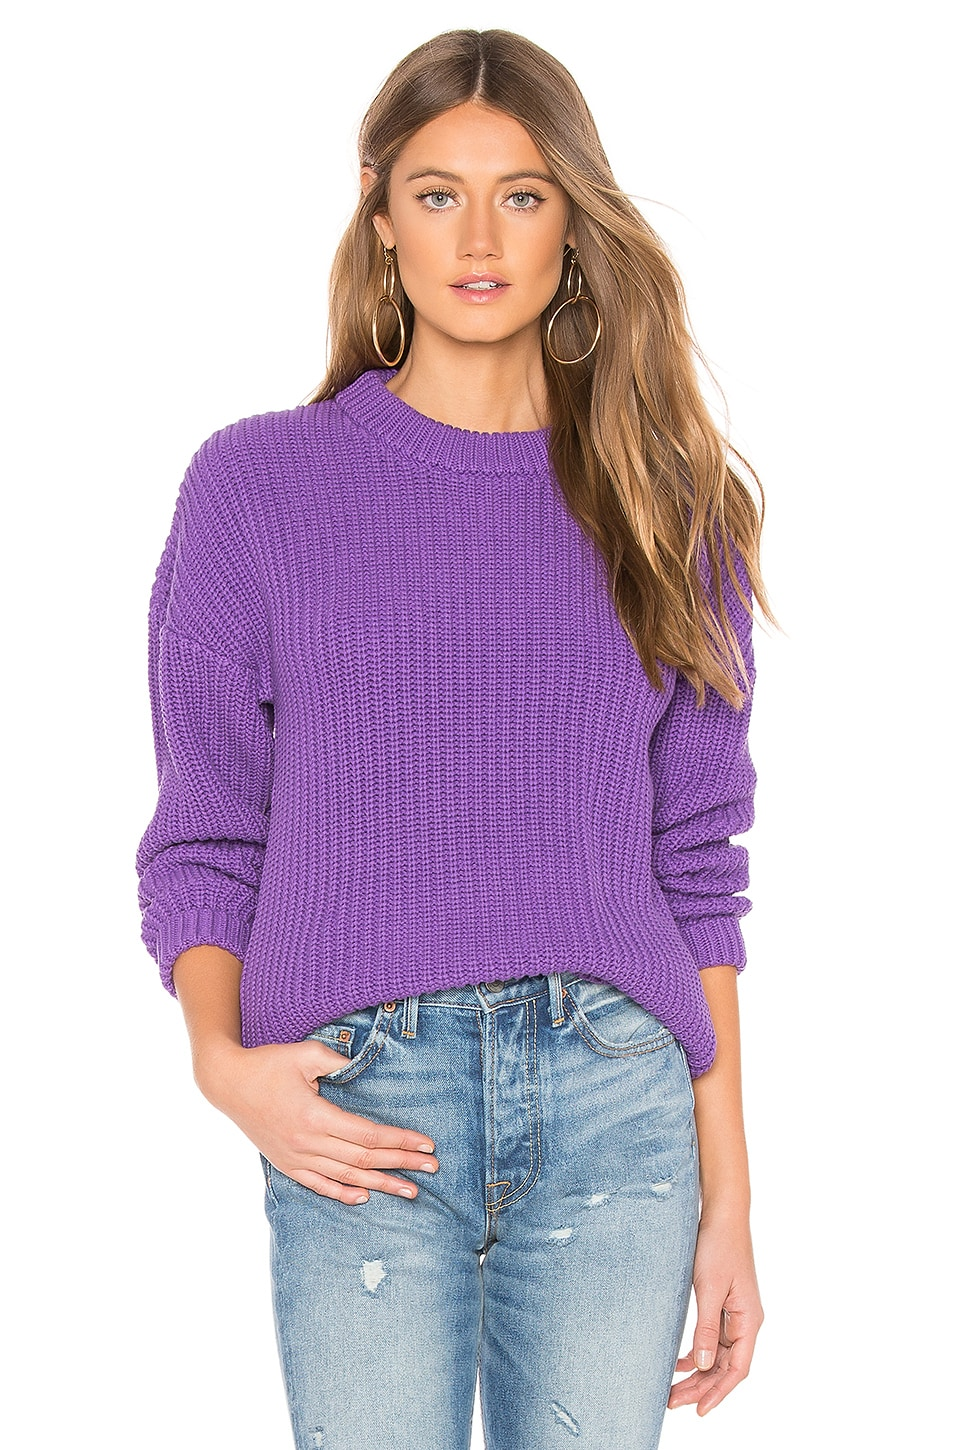 CALLAHAN X Revolve Shaker Boyfriend Sweater in Purple